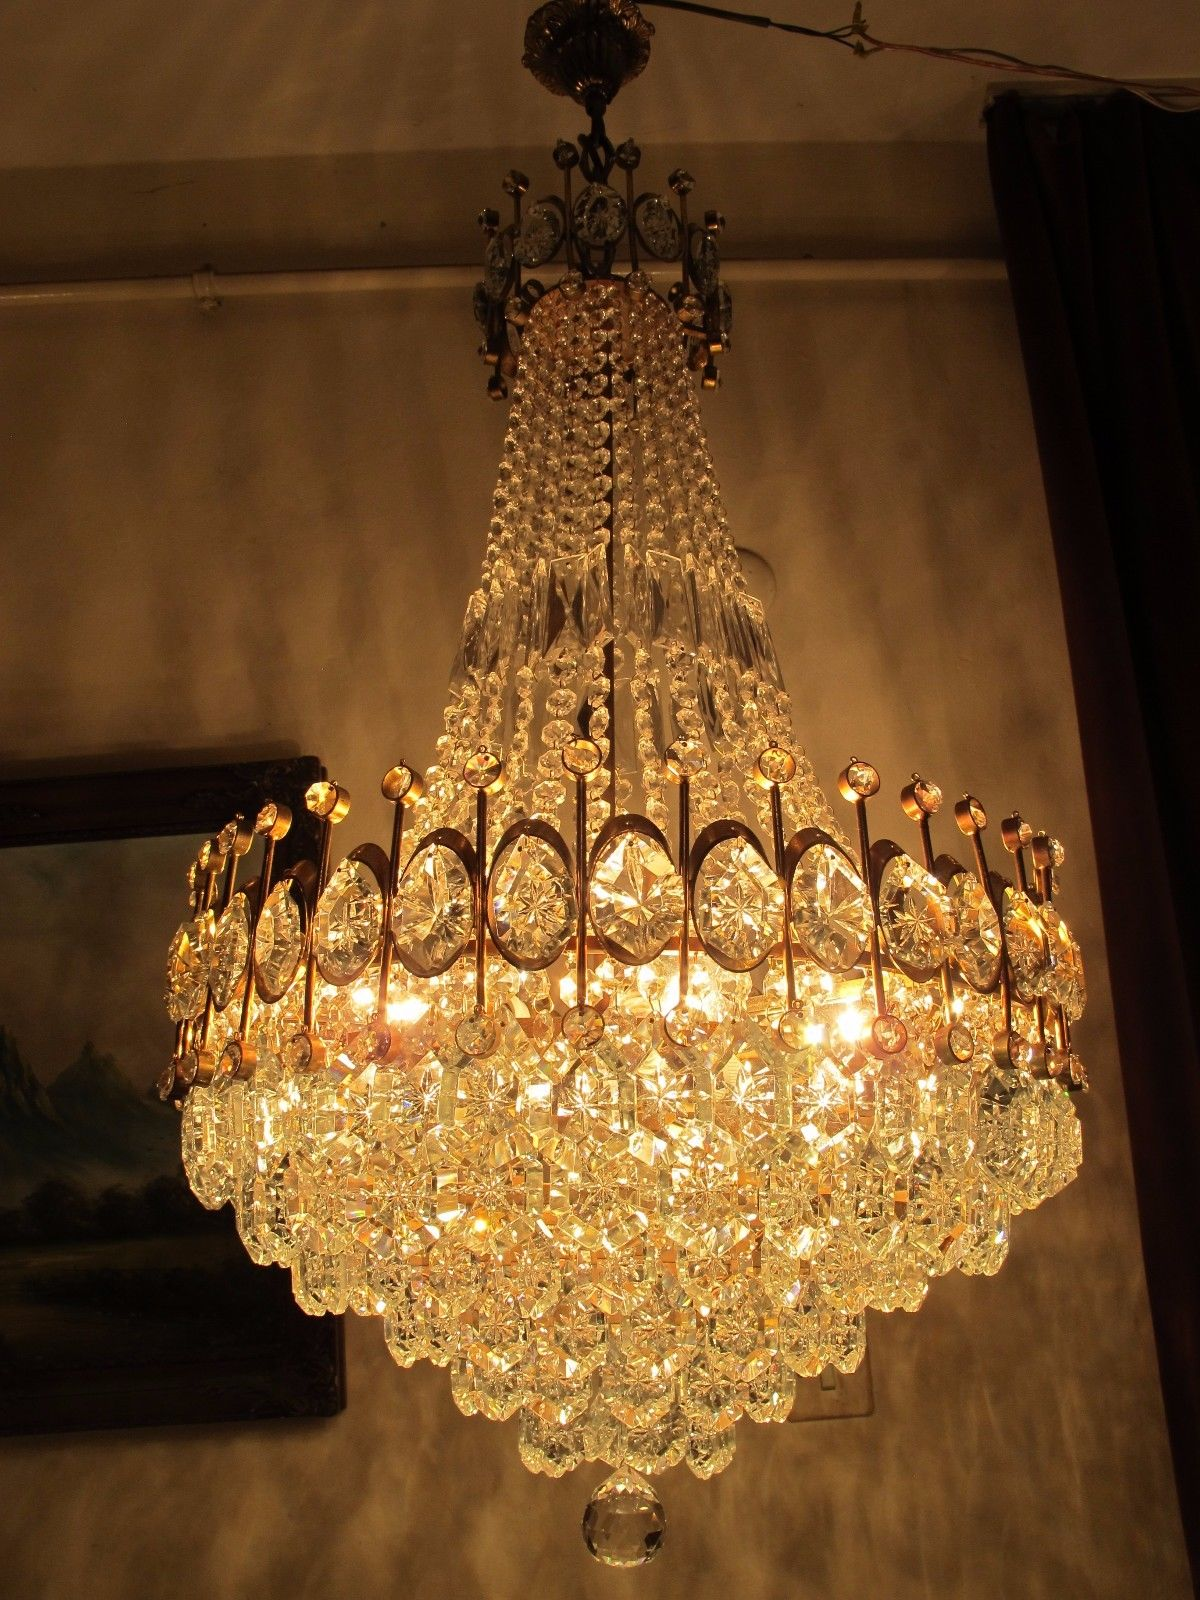 A crystal chandelier does not make any luxury yet